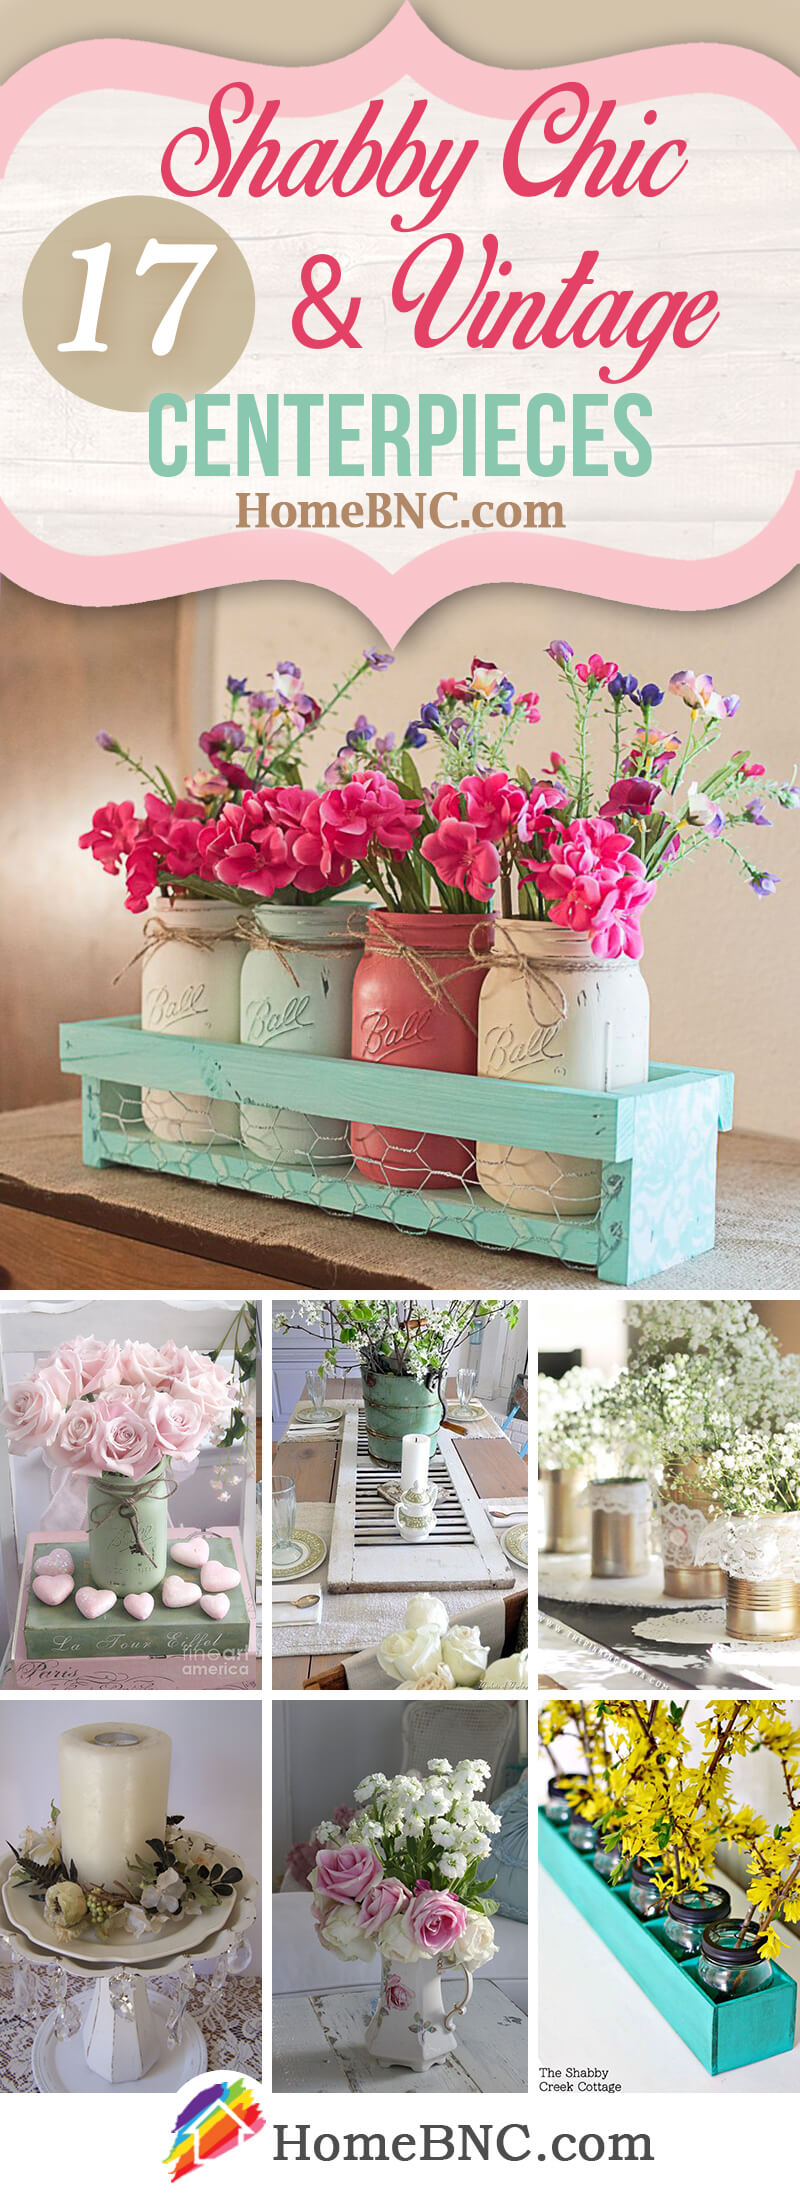 Shabby Chic Centerpiece Ideas